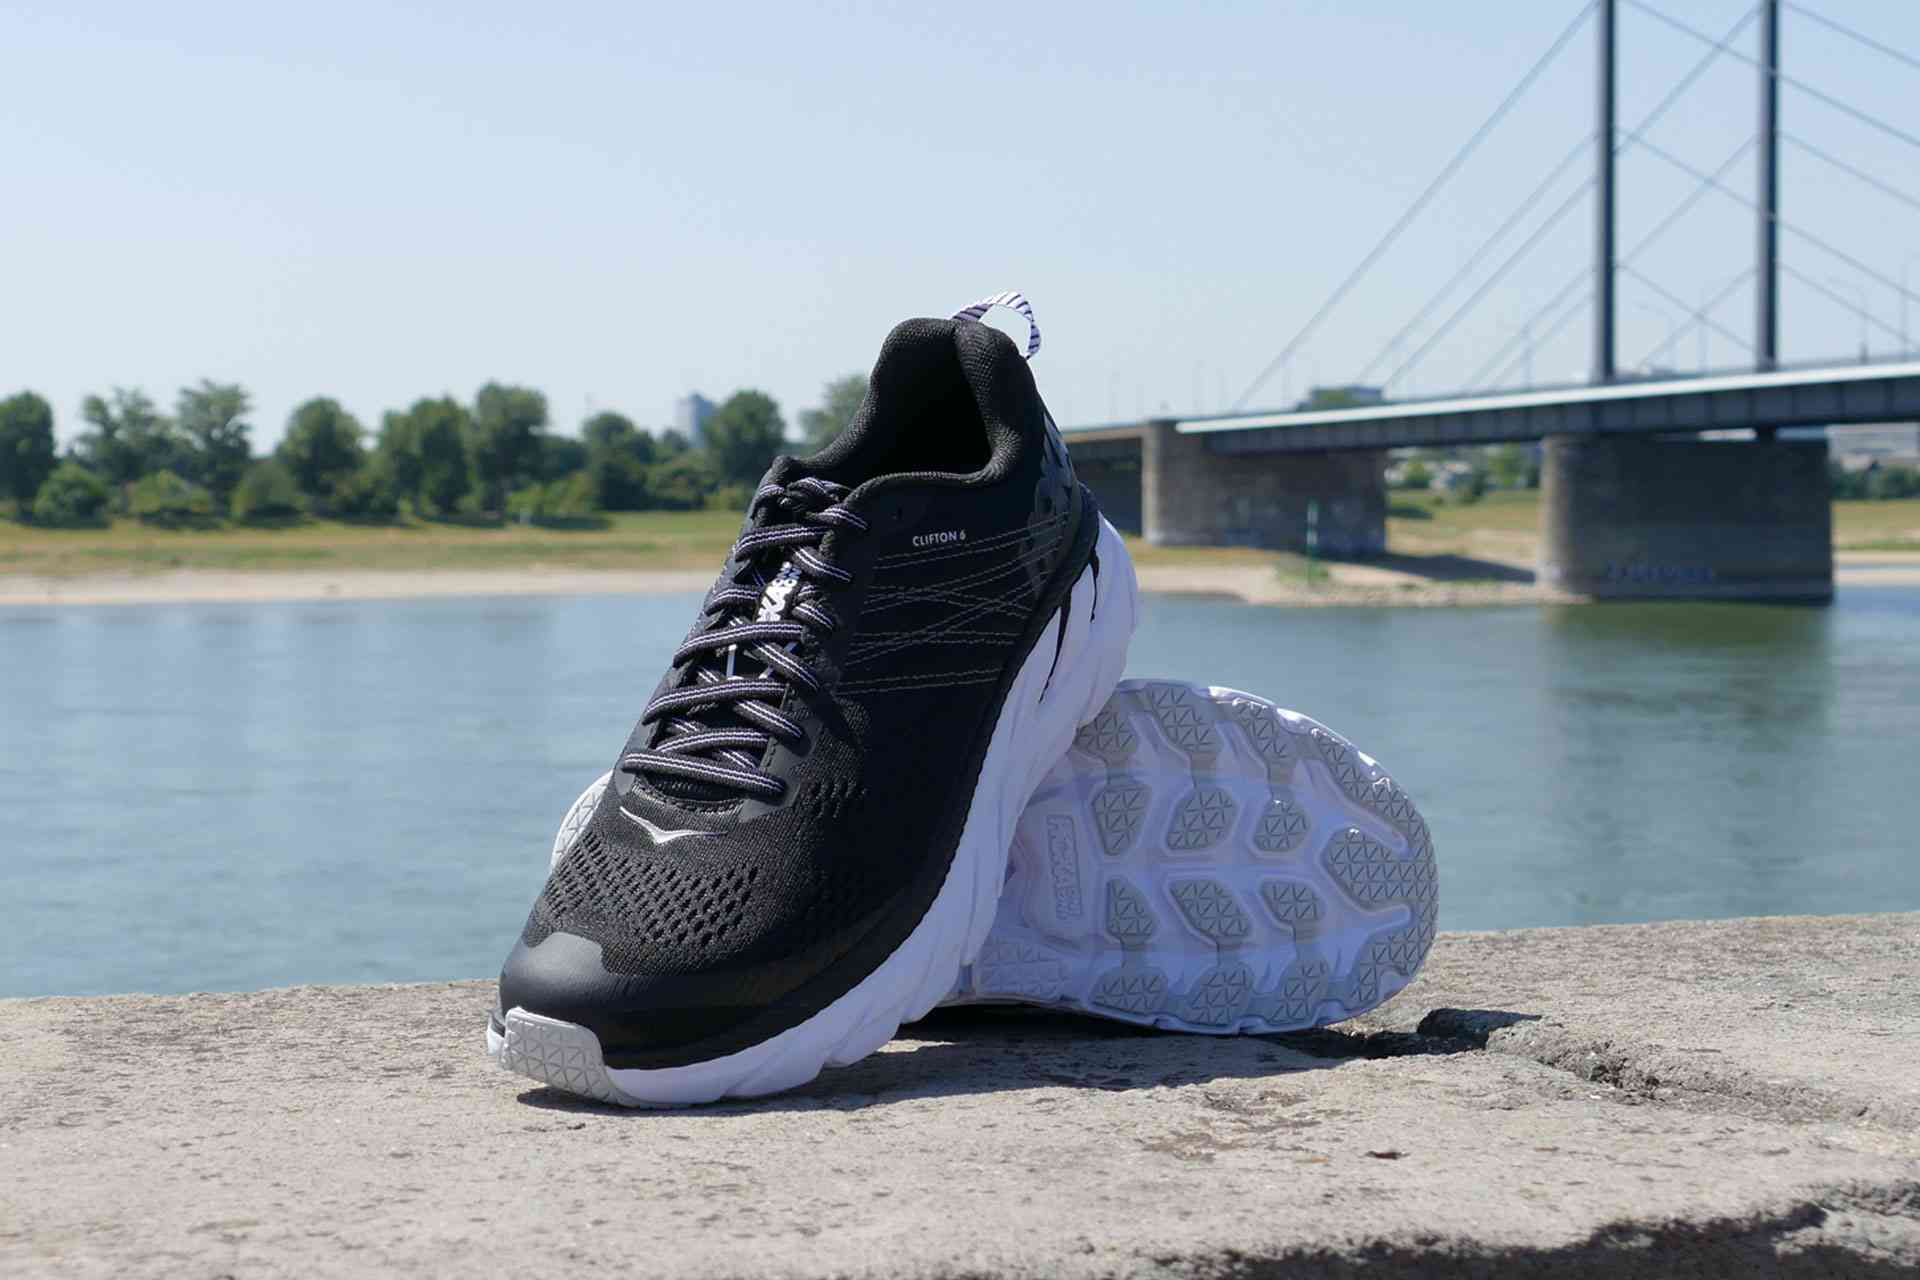 hier:Test HOKA ONE ONE Clifton 6